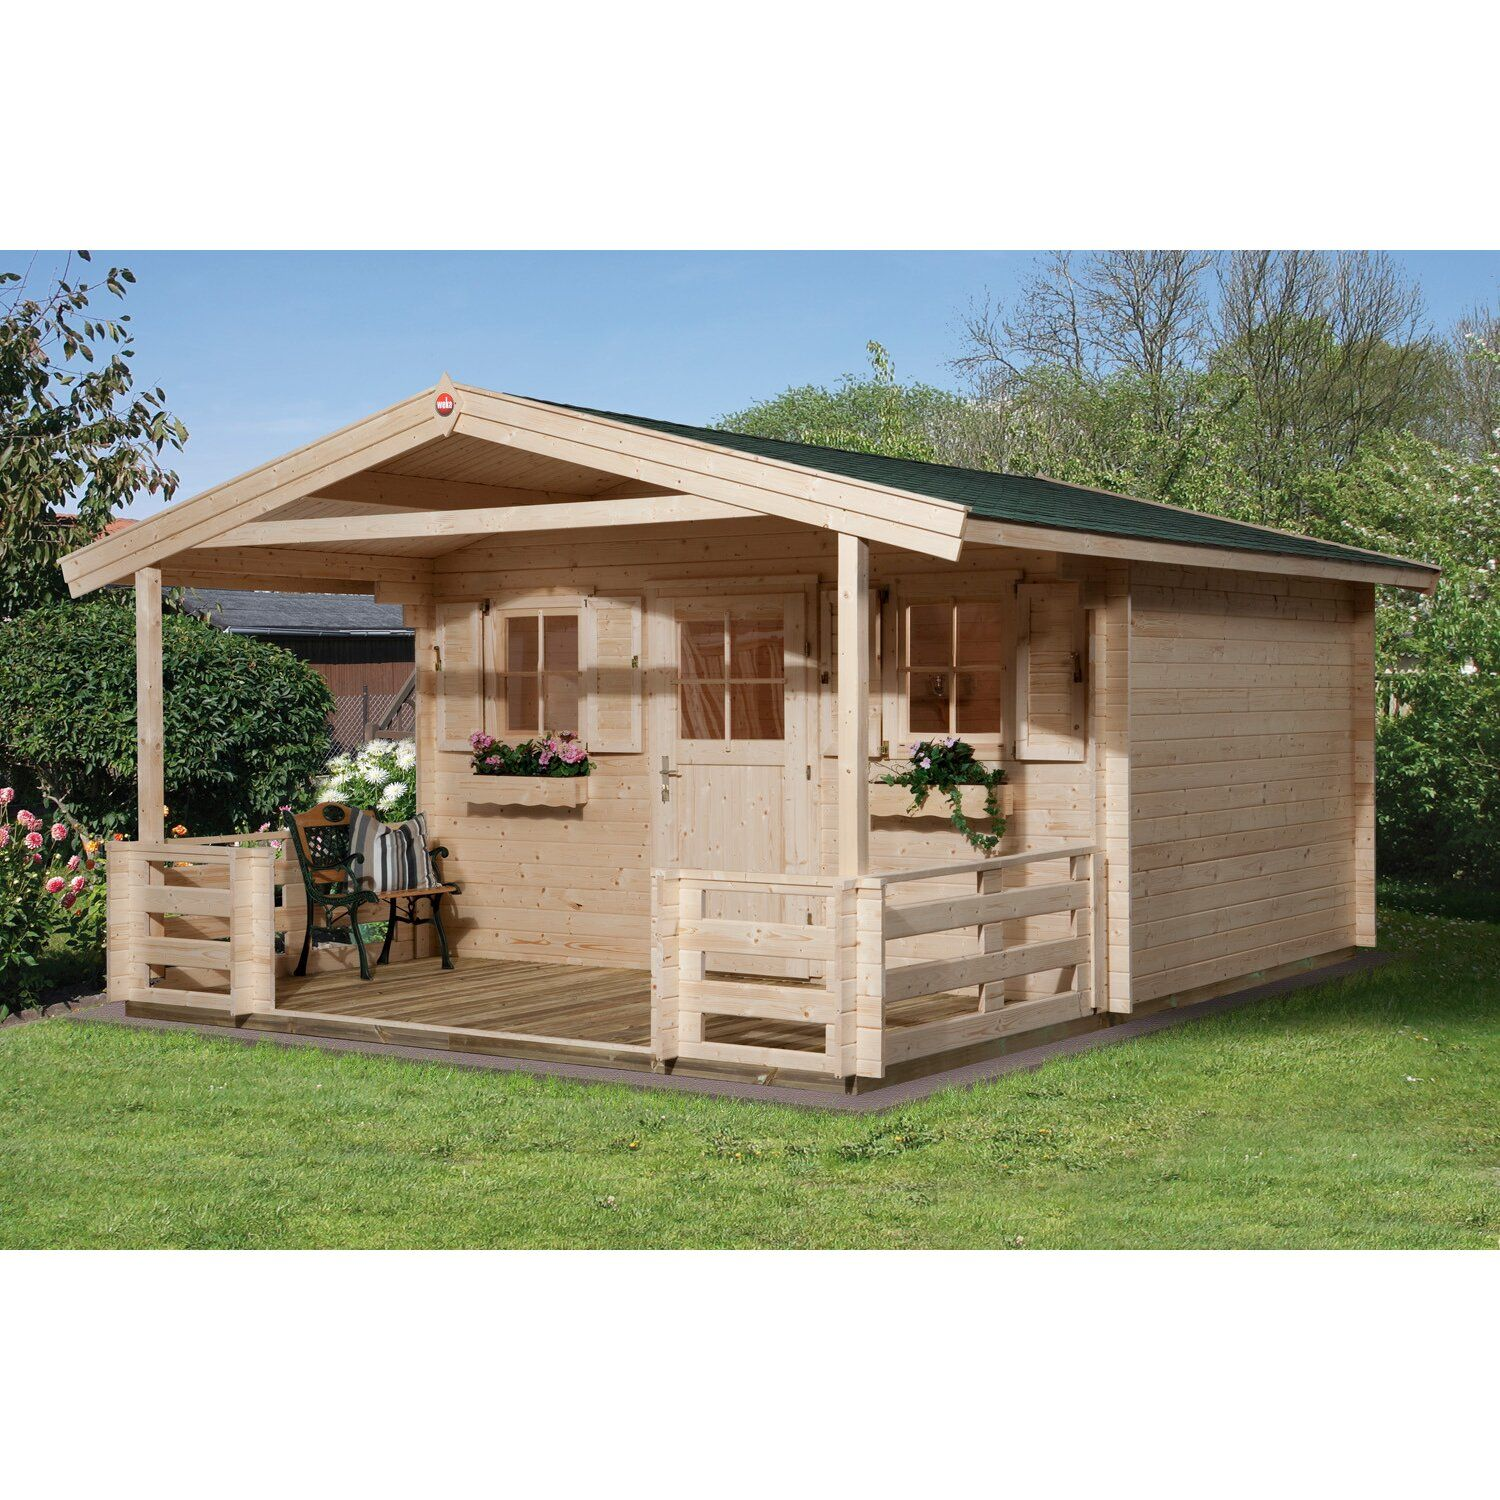 Gartenhaus Obi Holz In 2021 Outdoor Structures Wood Roof Wood Construction